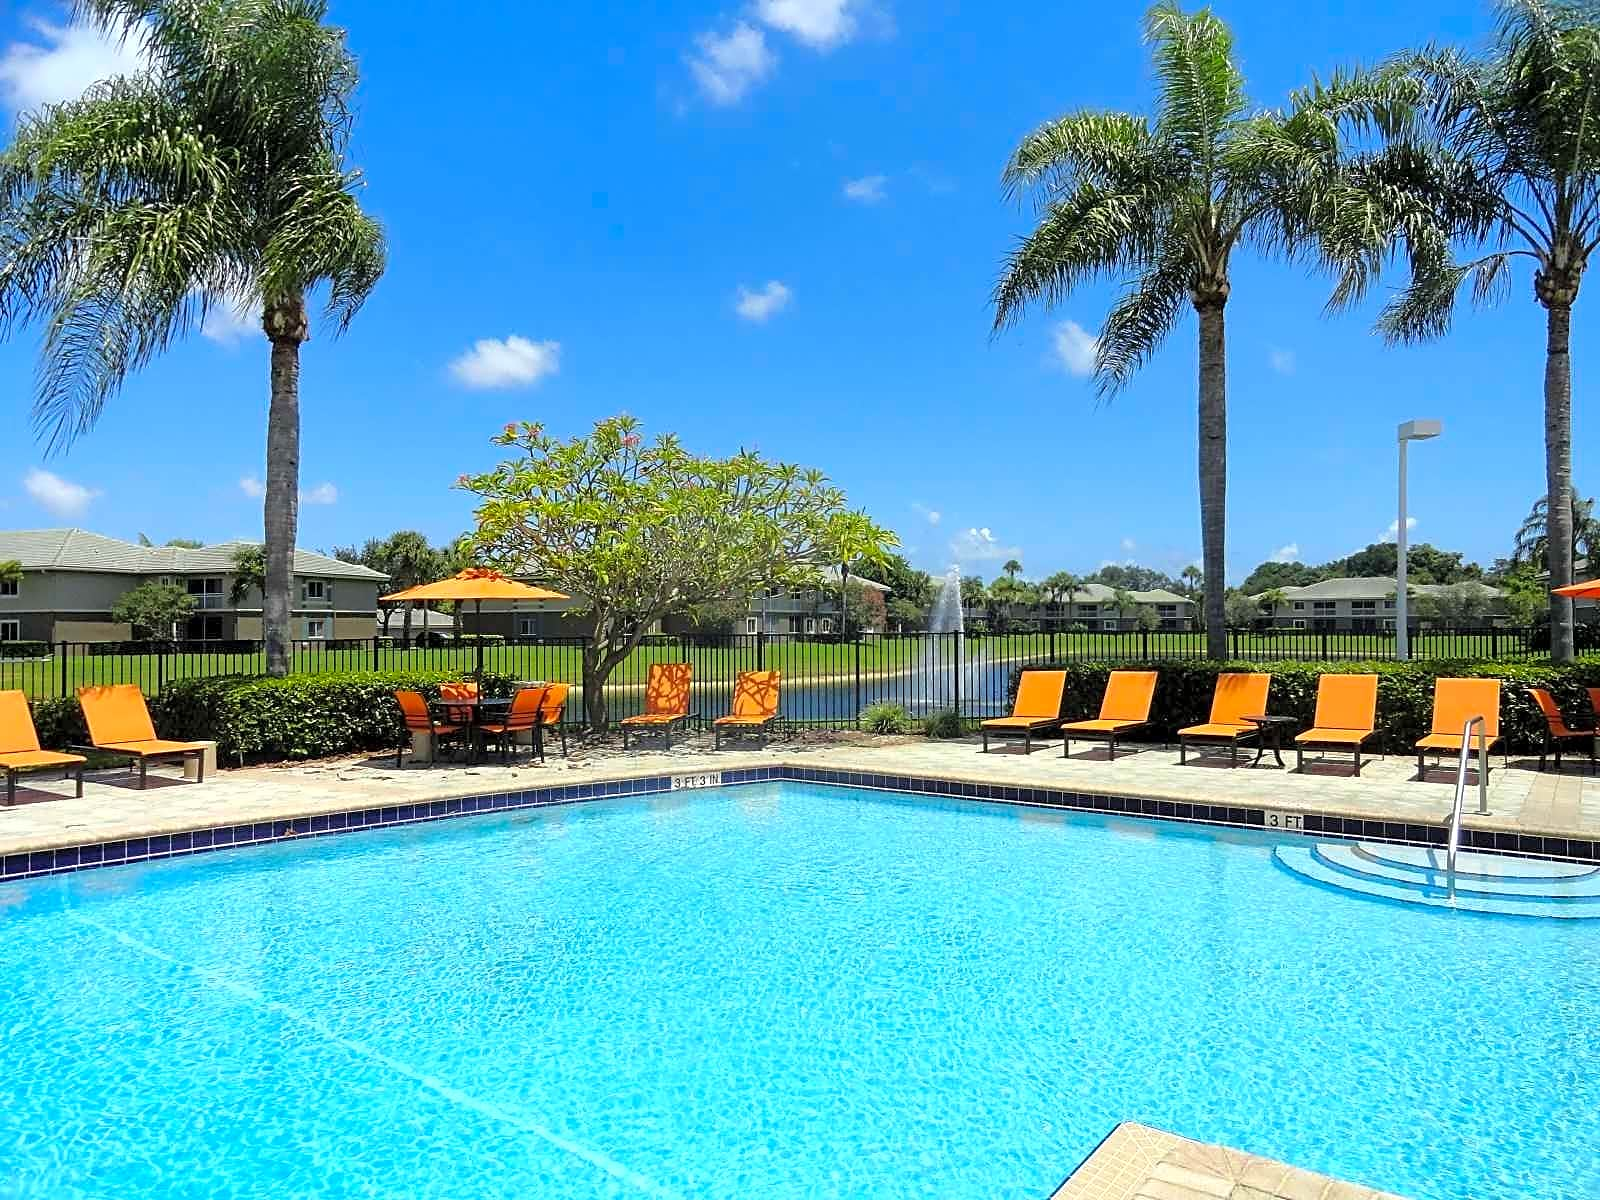 Citation Club for rent in Delray Beach